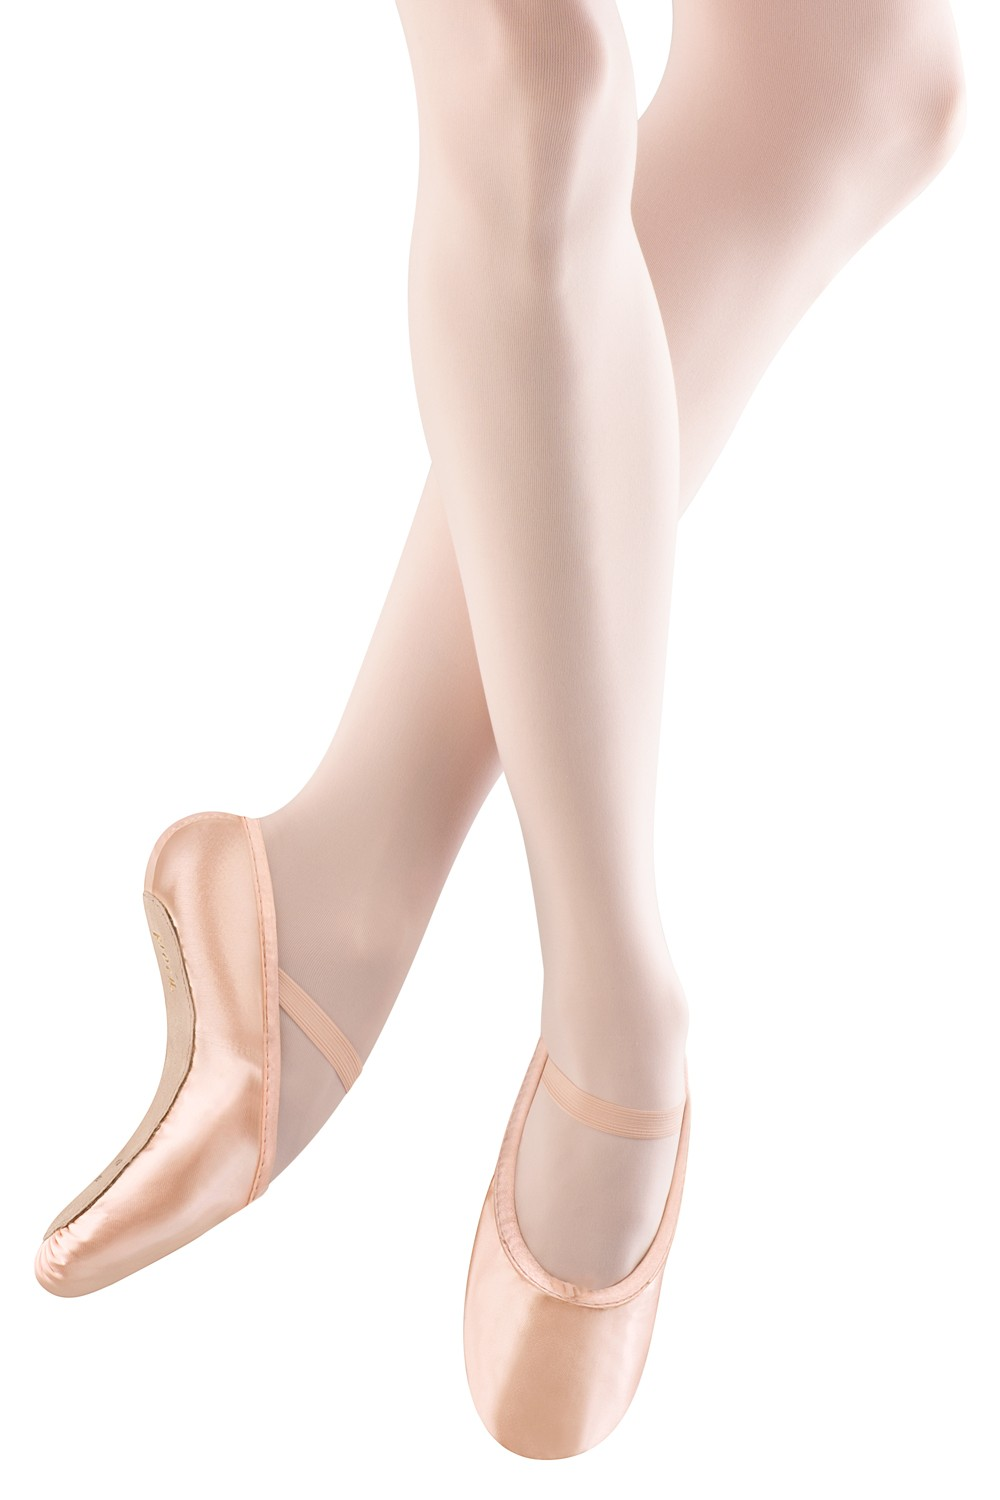 Stretch Ballet Shoes Women's Ballet Shoes